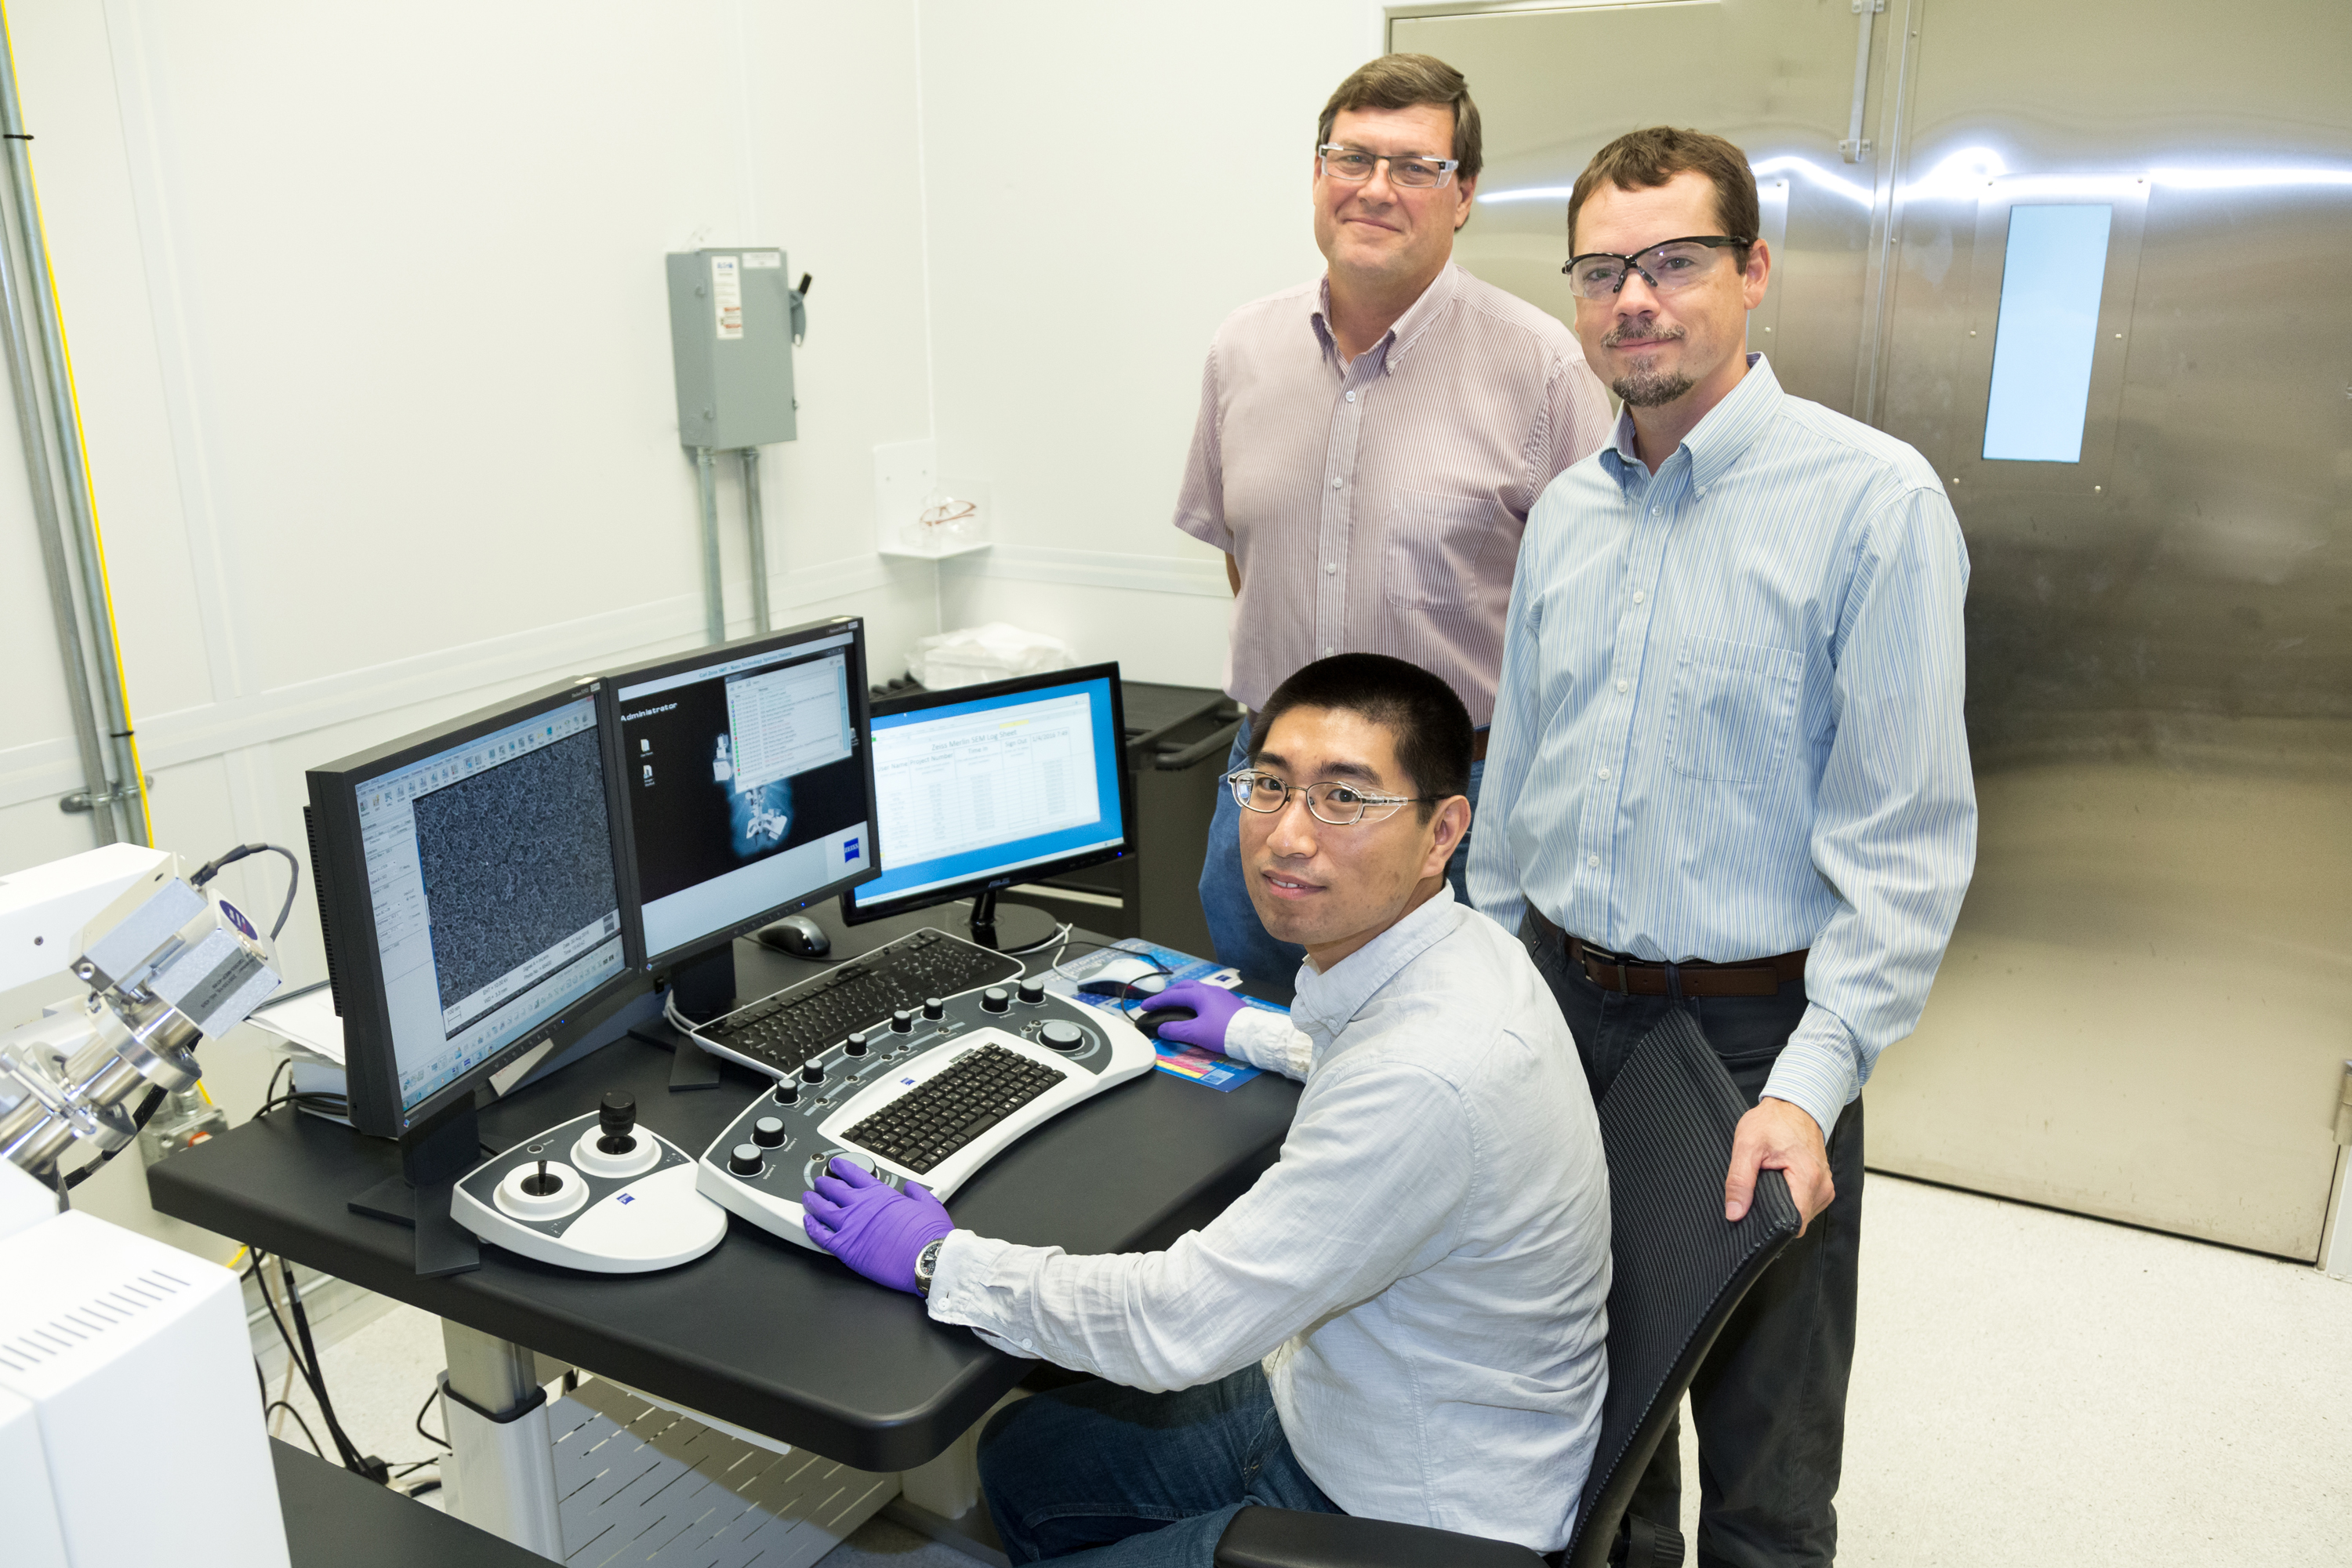 Oak Ridge National Laboratory's Yang Song (person seated), Dale Hensley (person standing left) and Adam Rondinone examine a carbon nanospike sample with a scanning electron microscope.